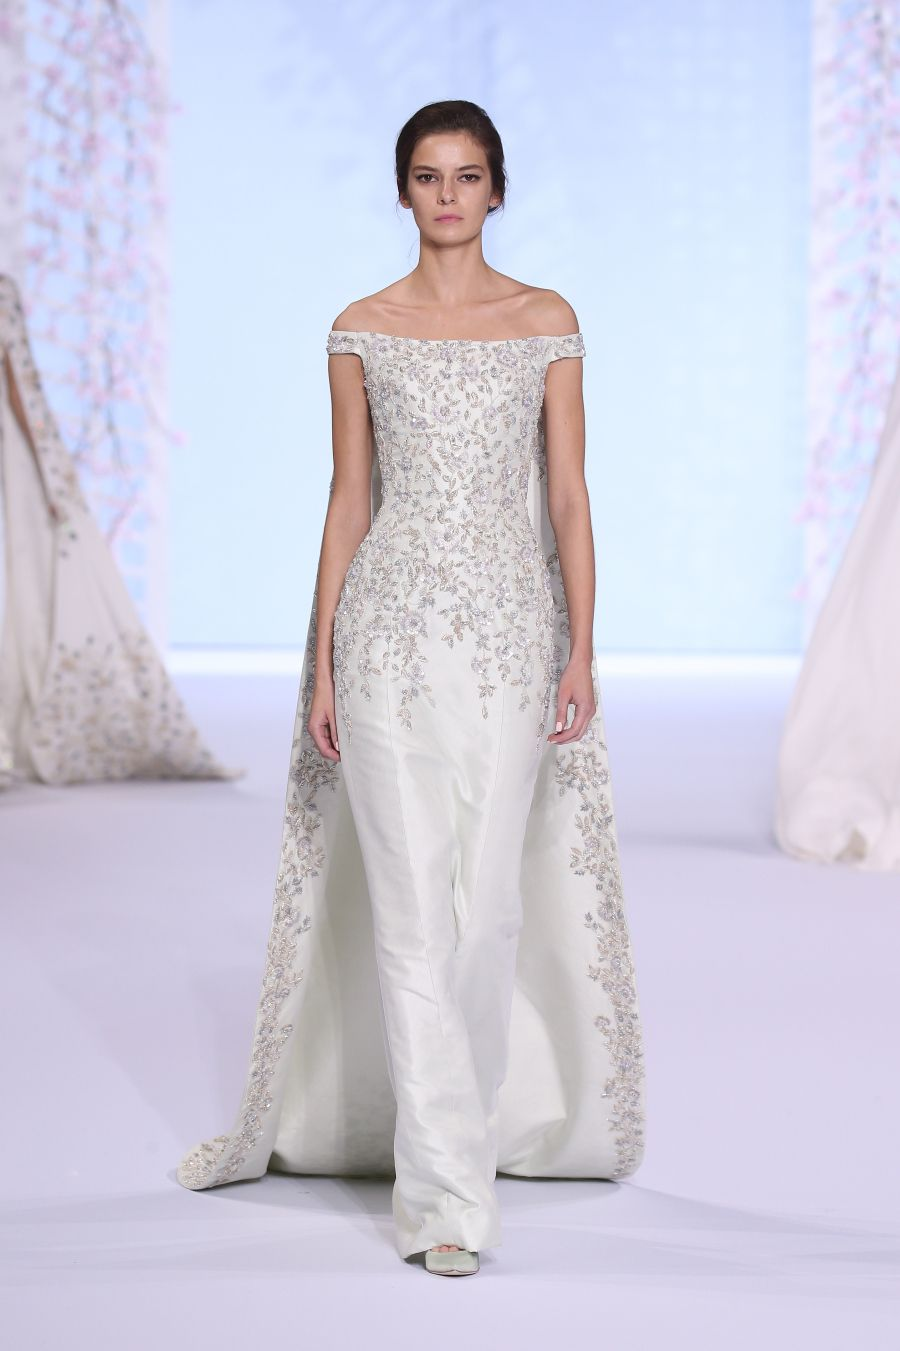 Weddingworthy dresses straight from the paris couture runways